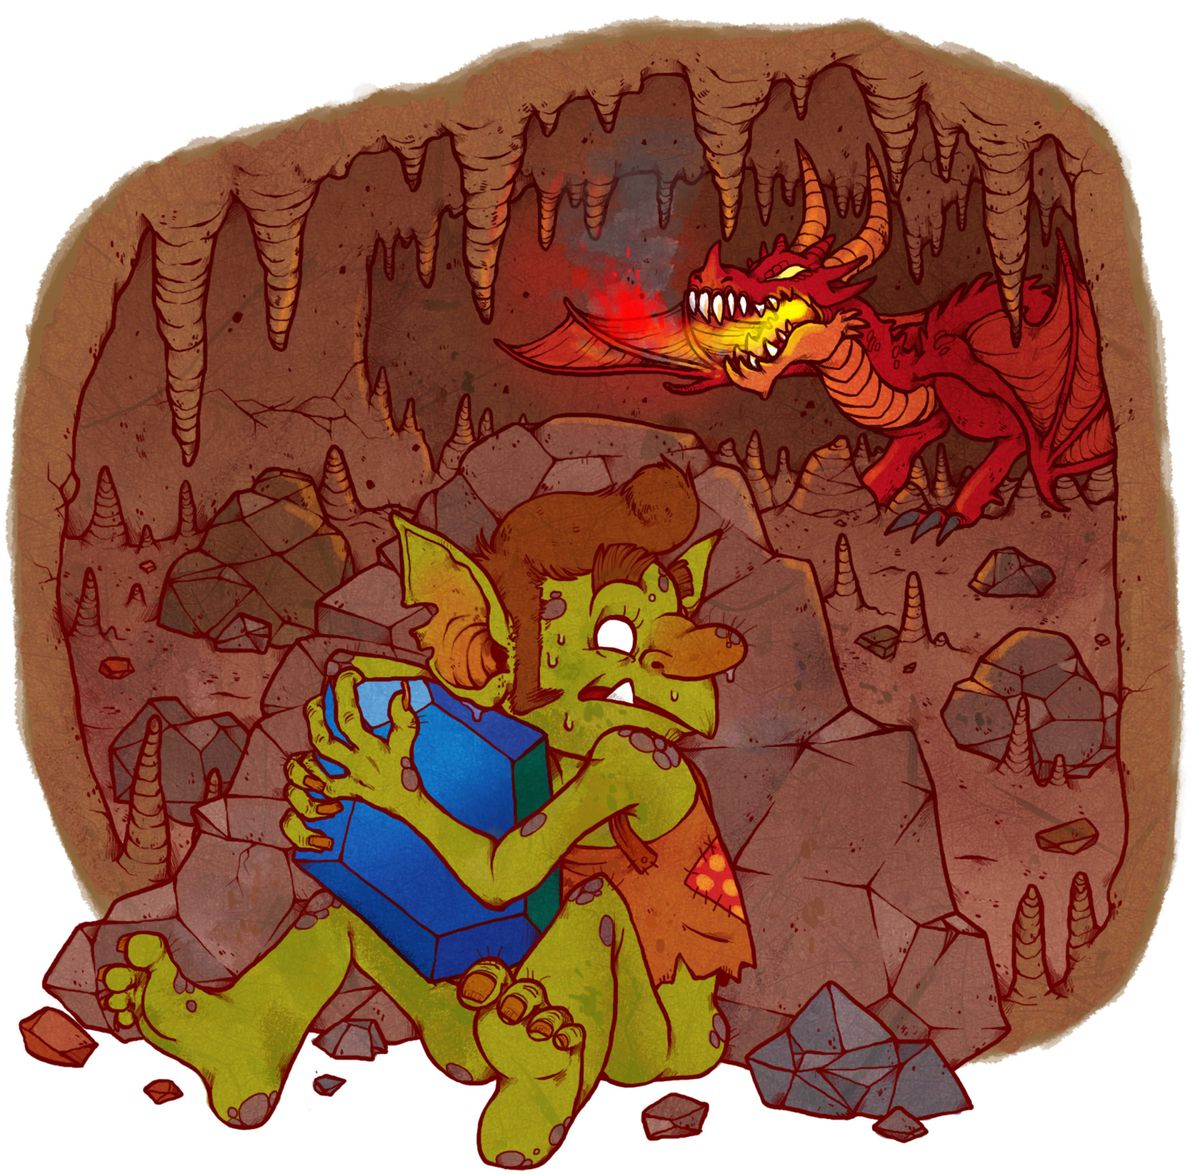 A goblin clutches a gem inside a mountain. In the background a red dragon looms.